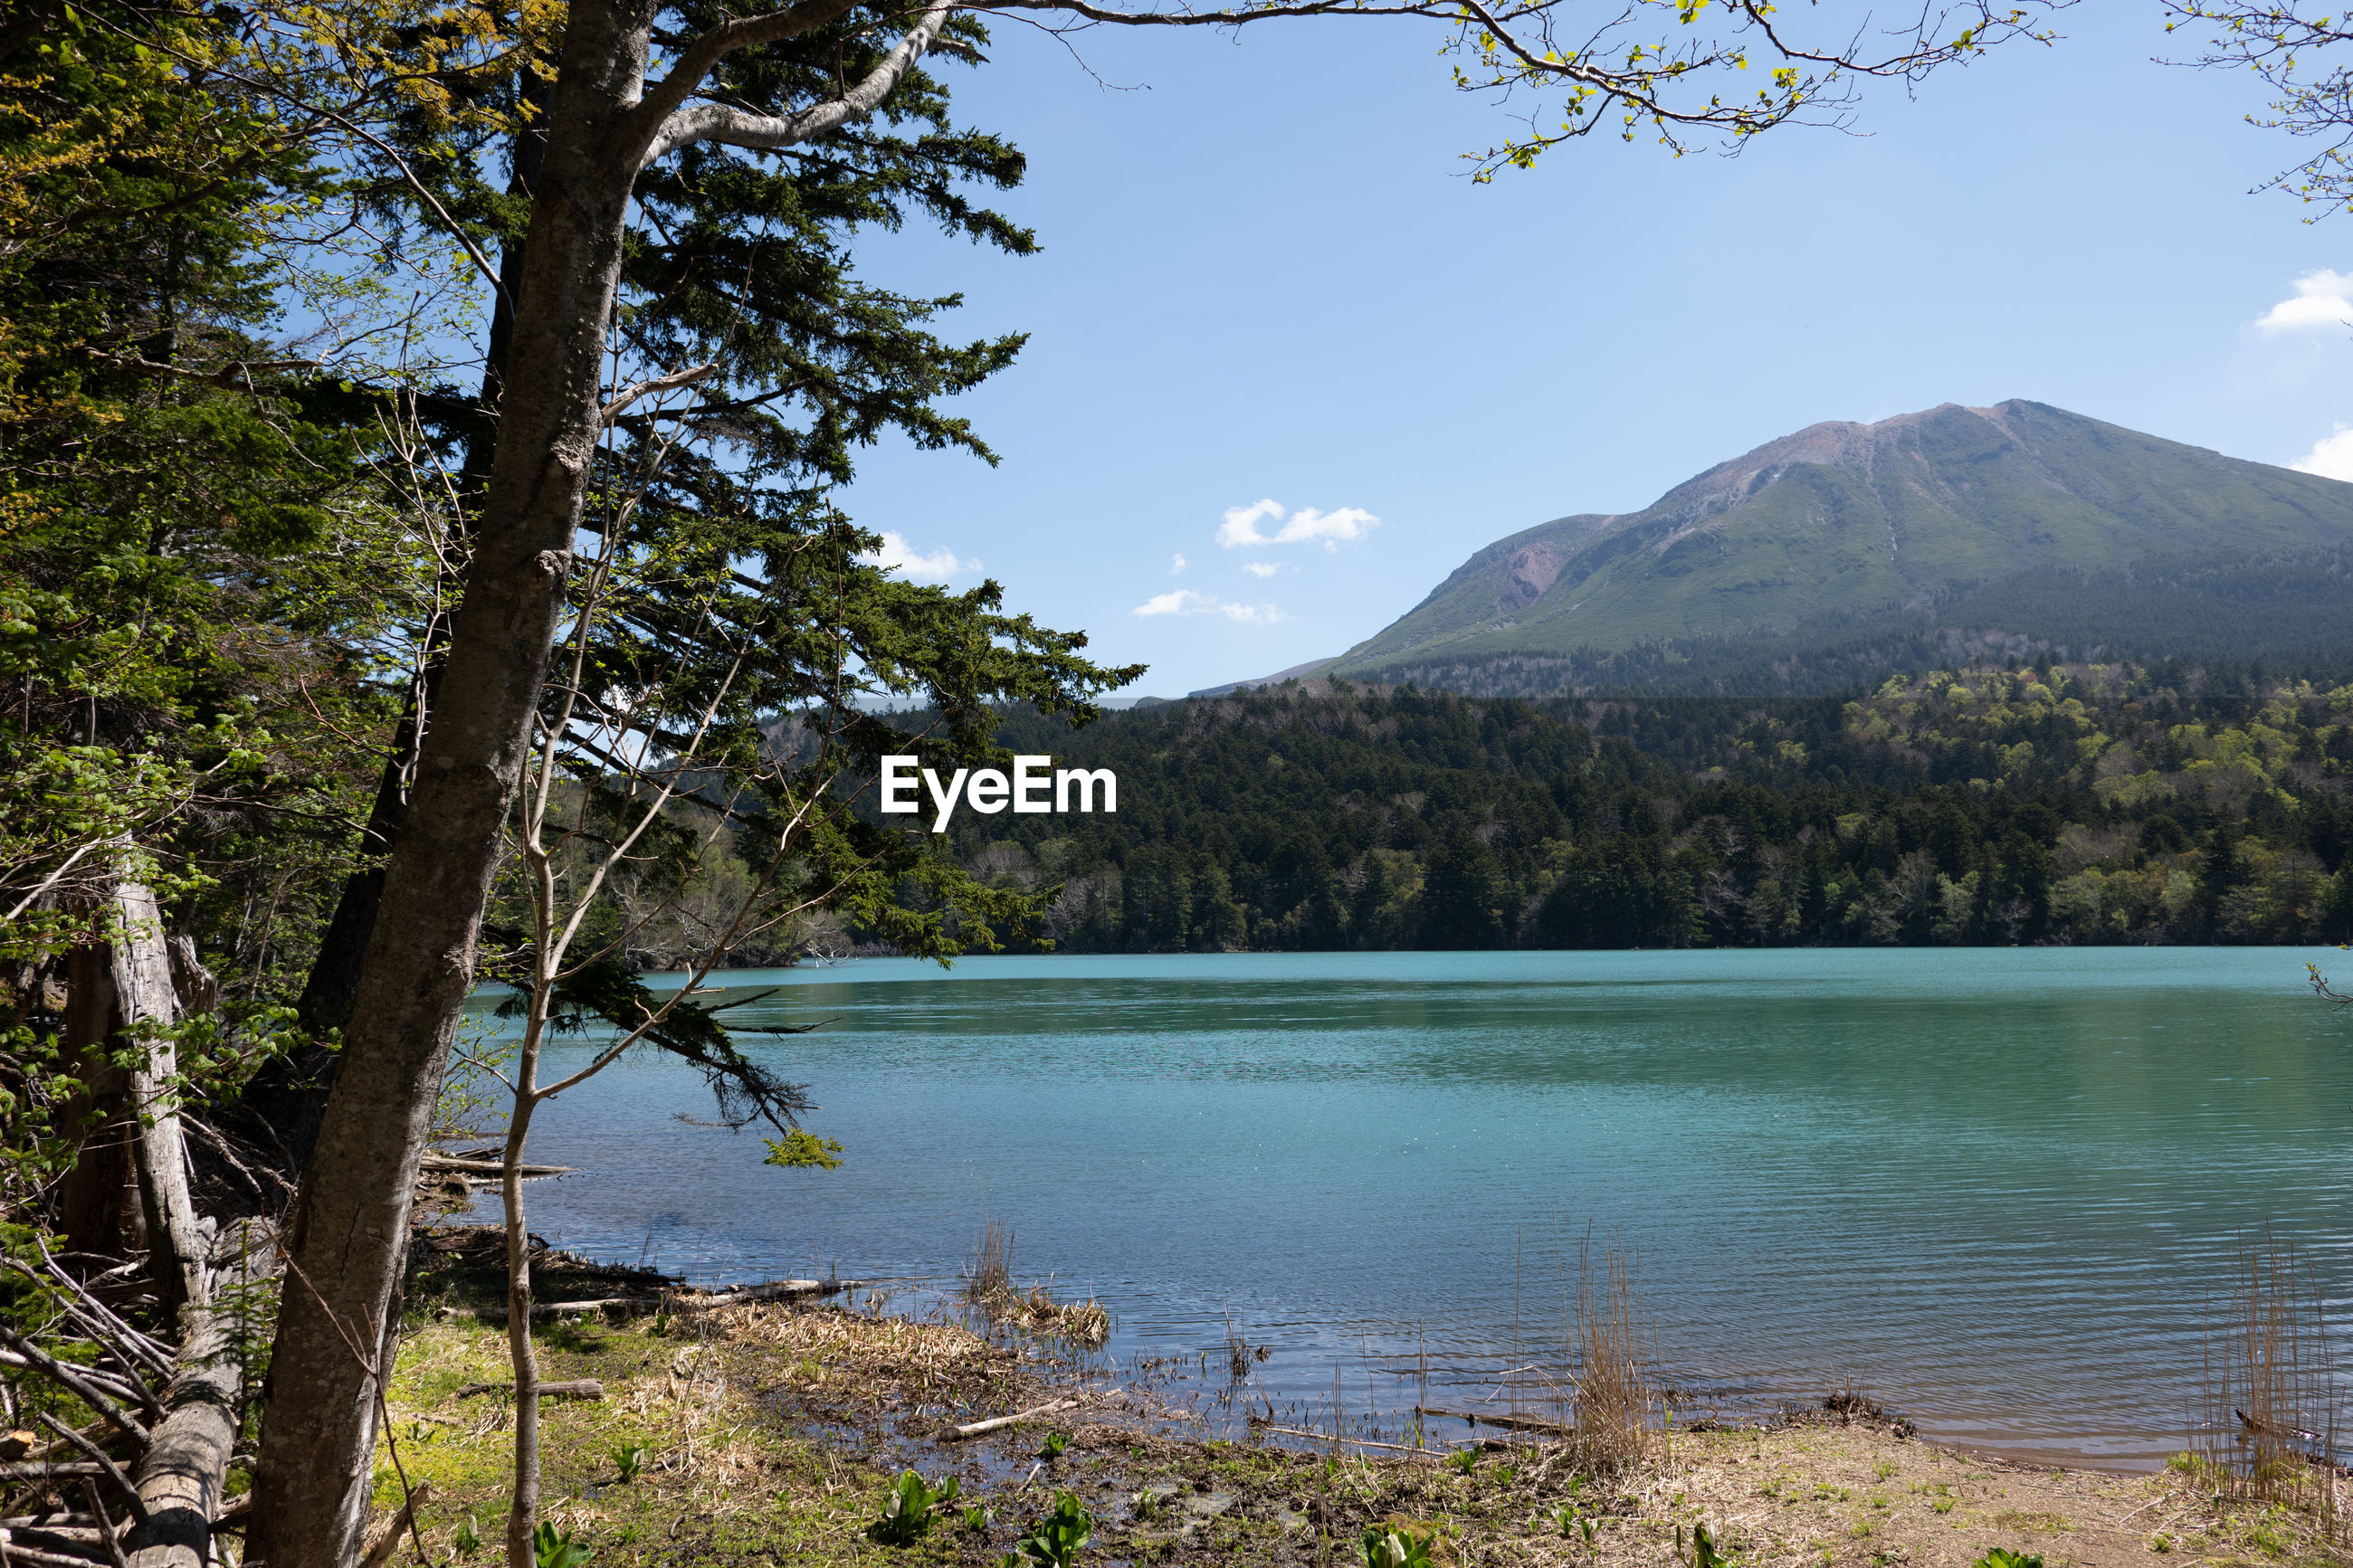 SCENIC VIEW OF LAKE AND TREES AGAINST SKY